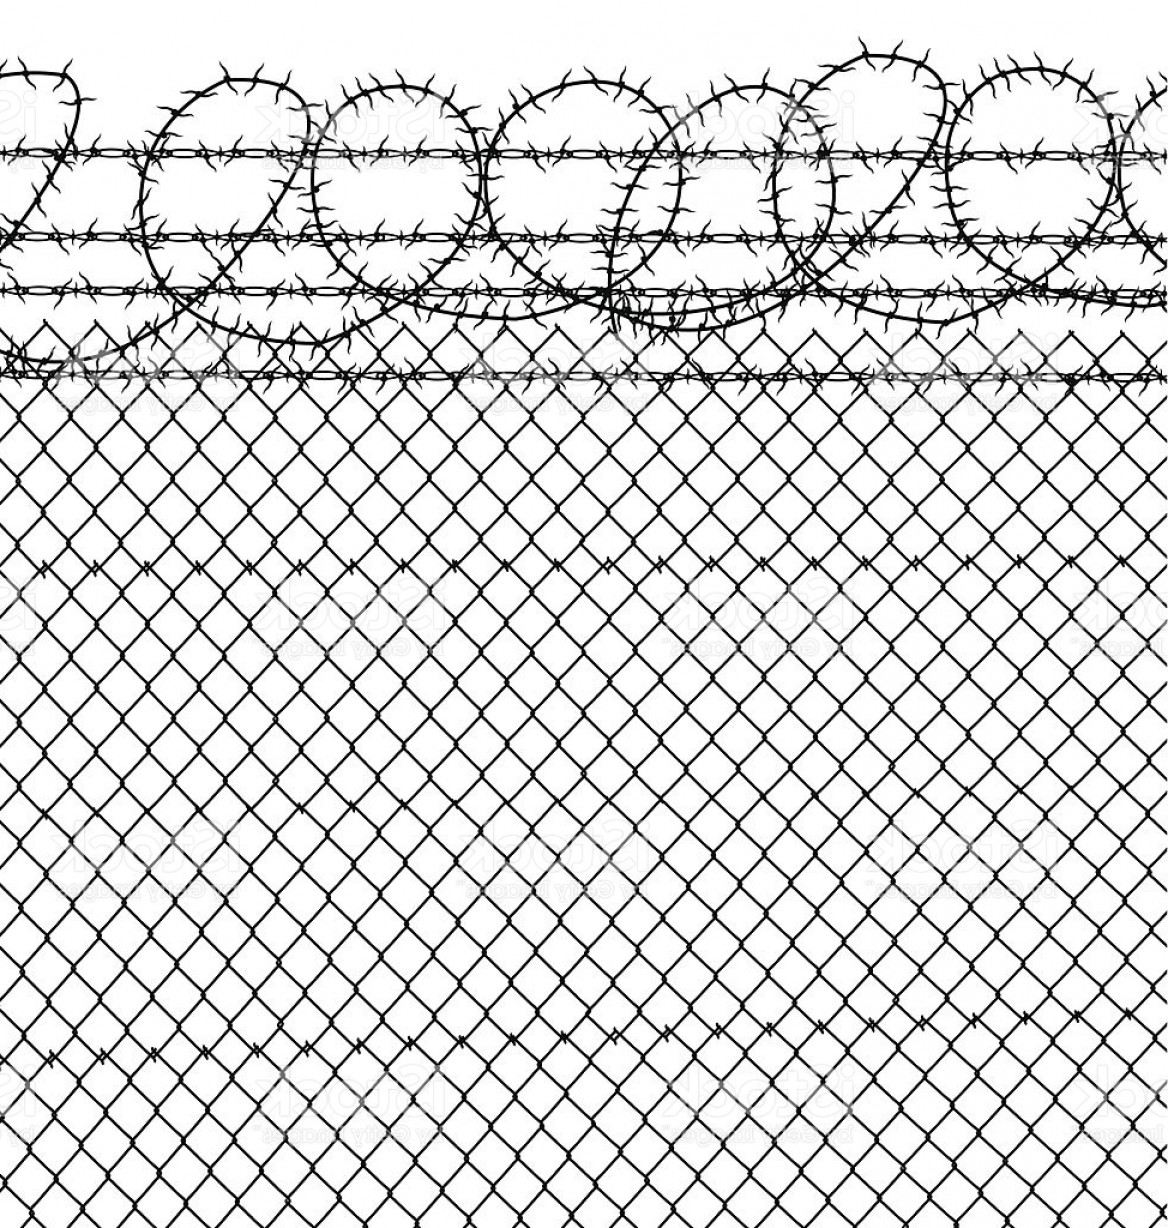 1168x1228 Prison Barbed Wire Chain Link Fence Gm Sohadacouri